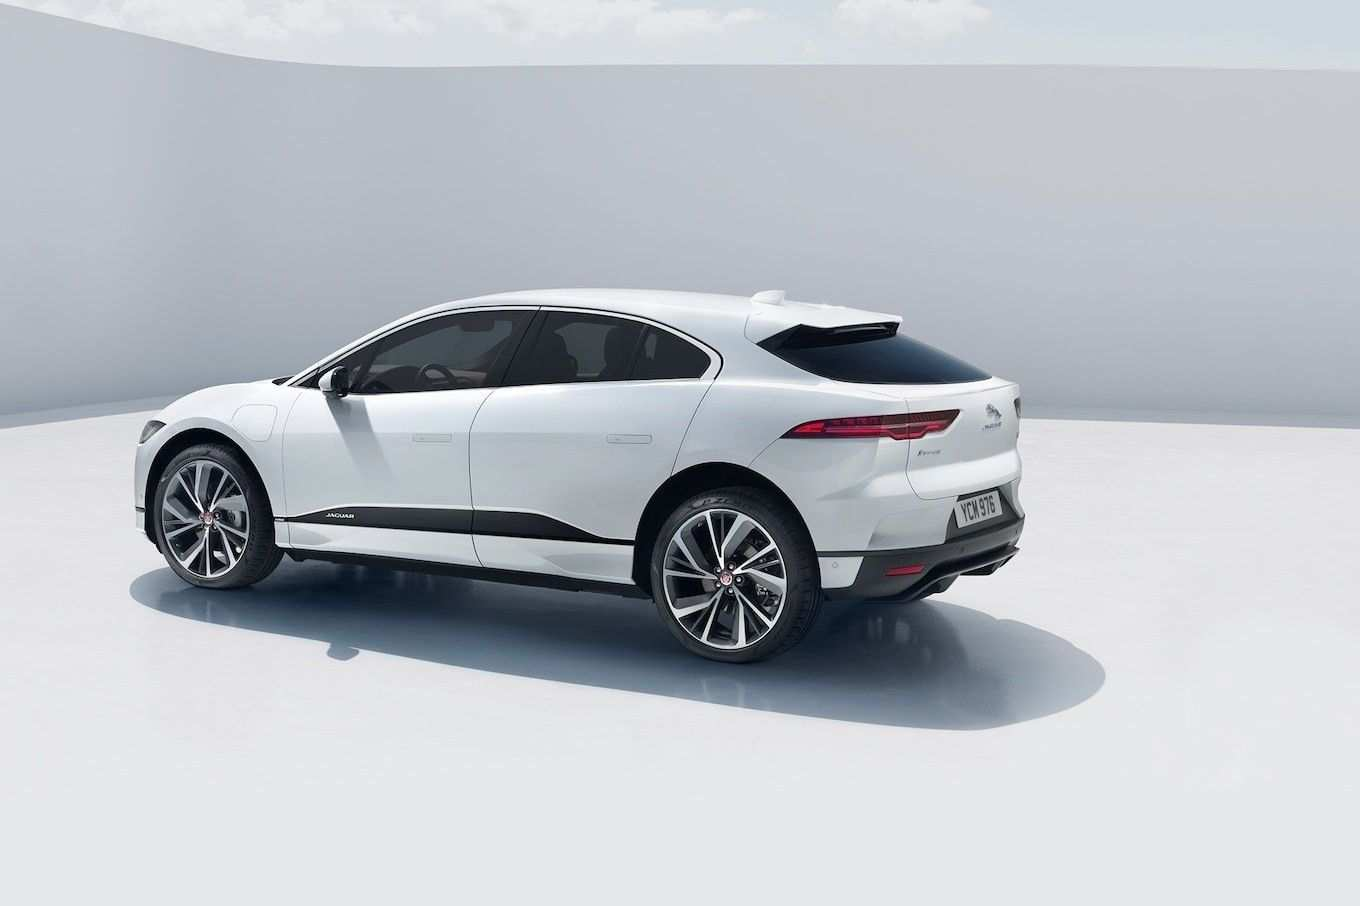 81 New 2019 Jaguar Cost Specs Performance and New Engine with 2019 Jaguar Cost Specs